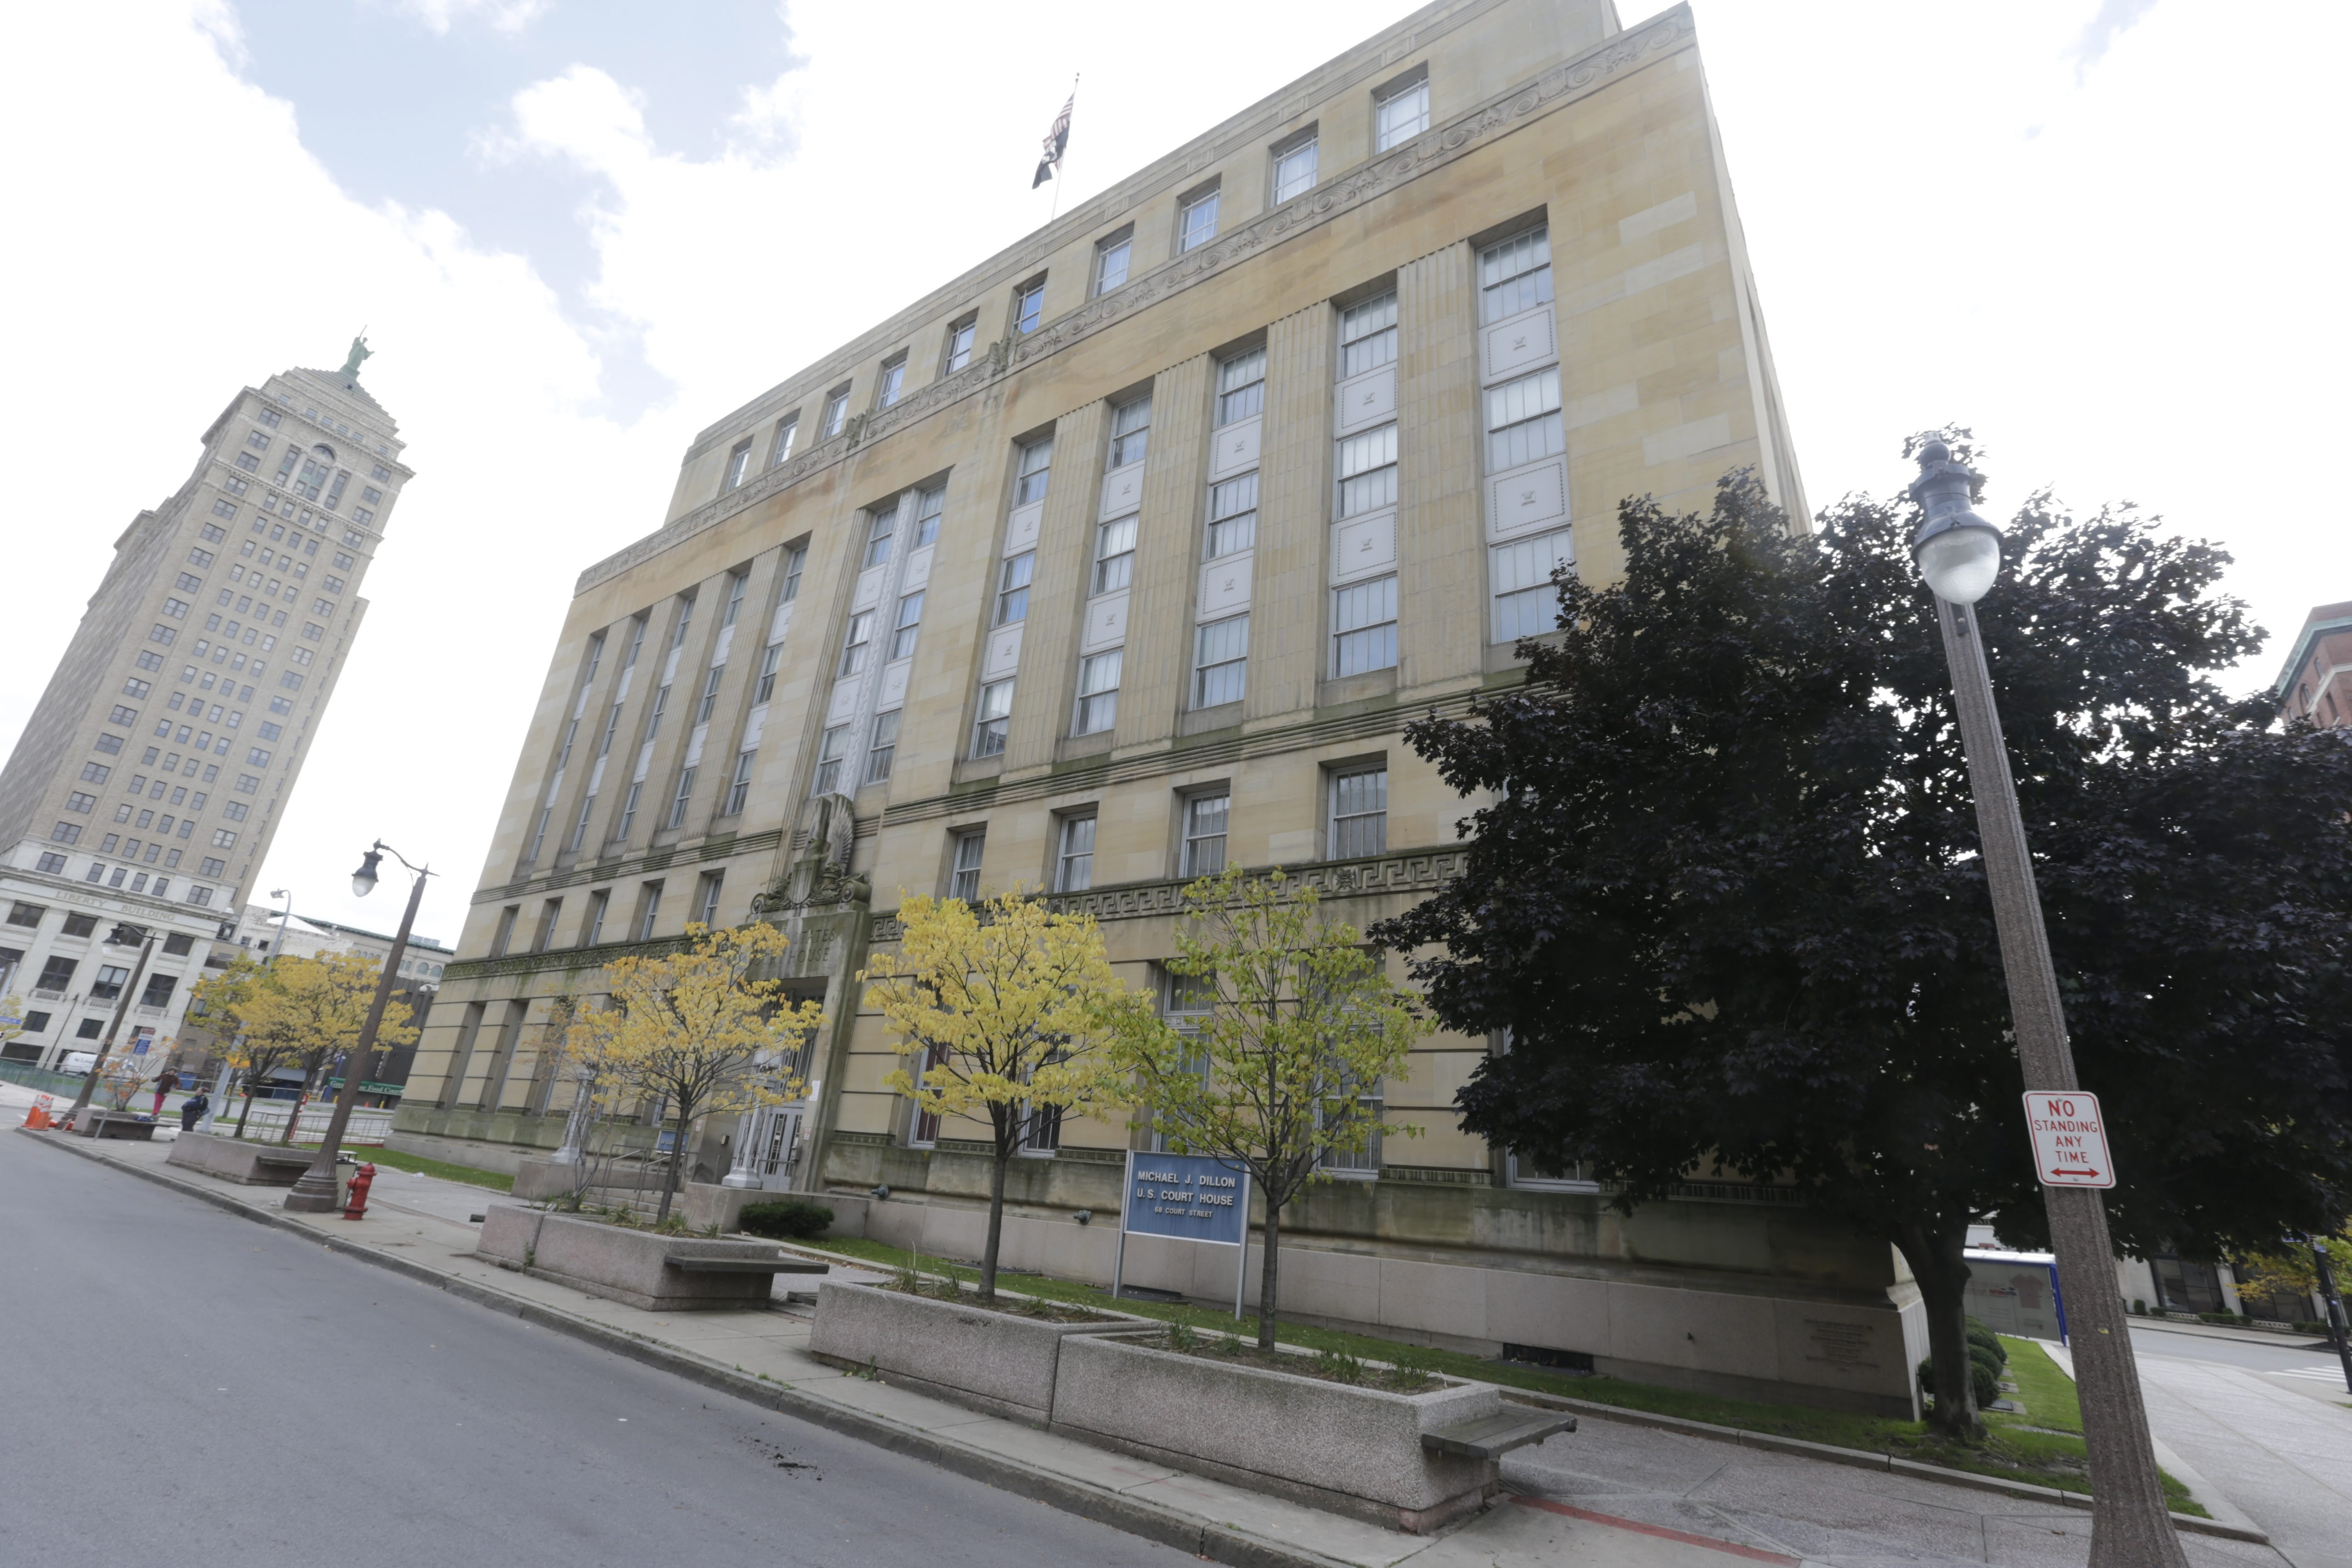 """If city officials get their wish, the Buffalo police and fire departments will relocate their respective headquarters to the former Michael J. Dillon Memorial U.S. Courthouse. The city's application to covert the site to a """"public safety headquarters"""" has already been submitted to the federal government, which declared the site """"surplus property"""" in November"""